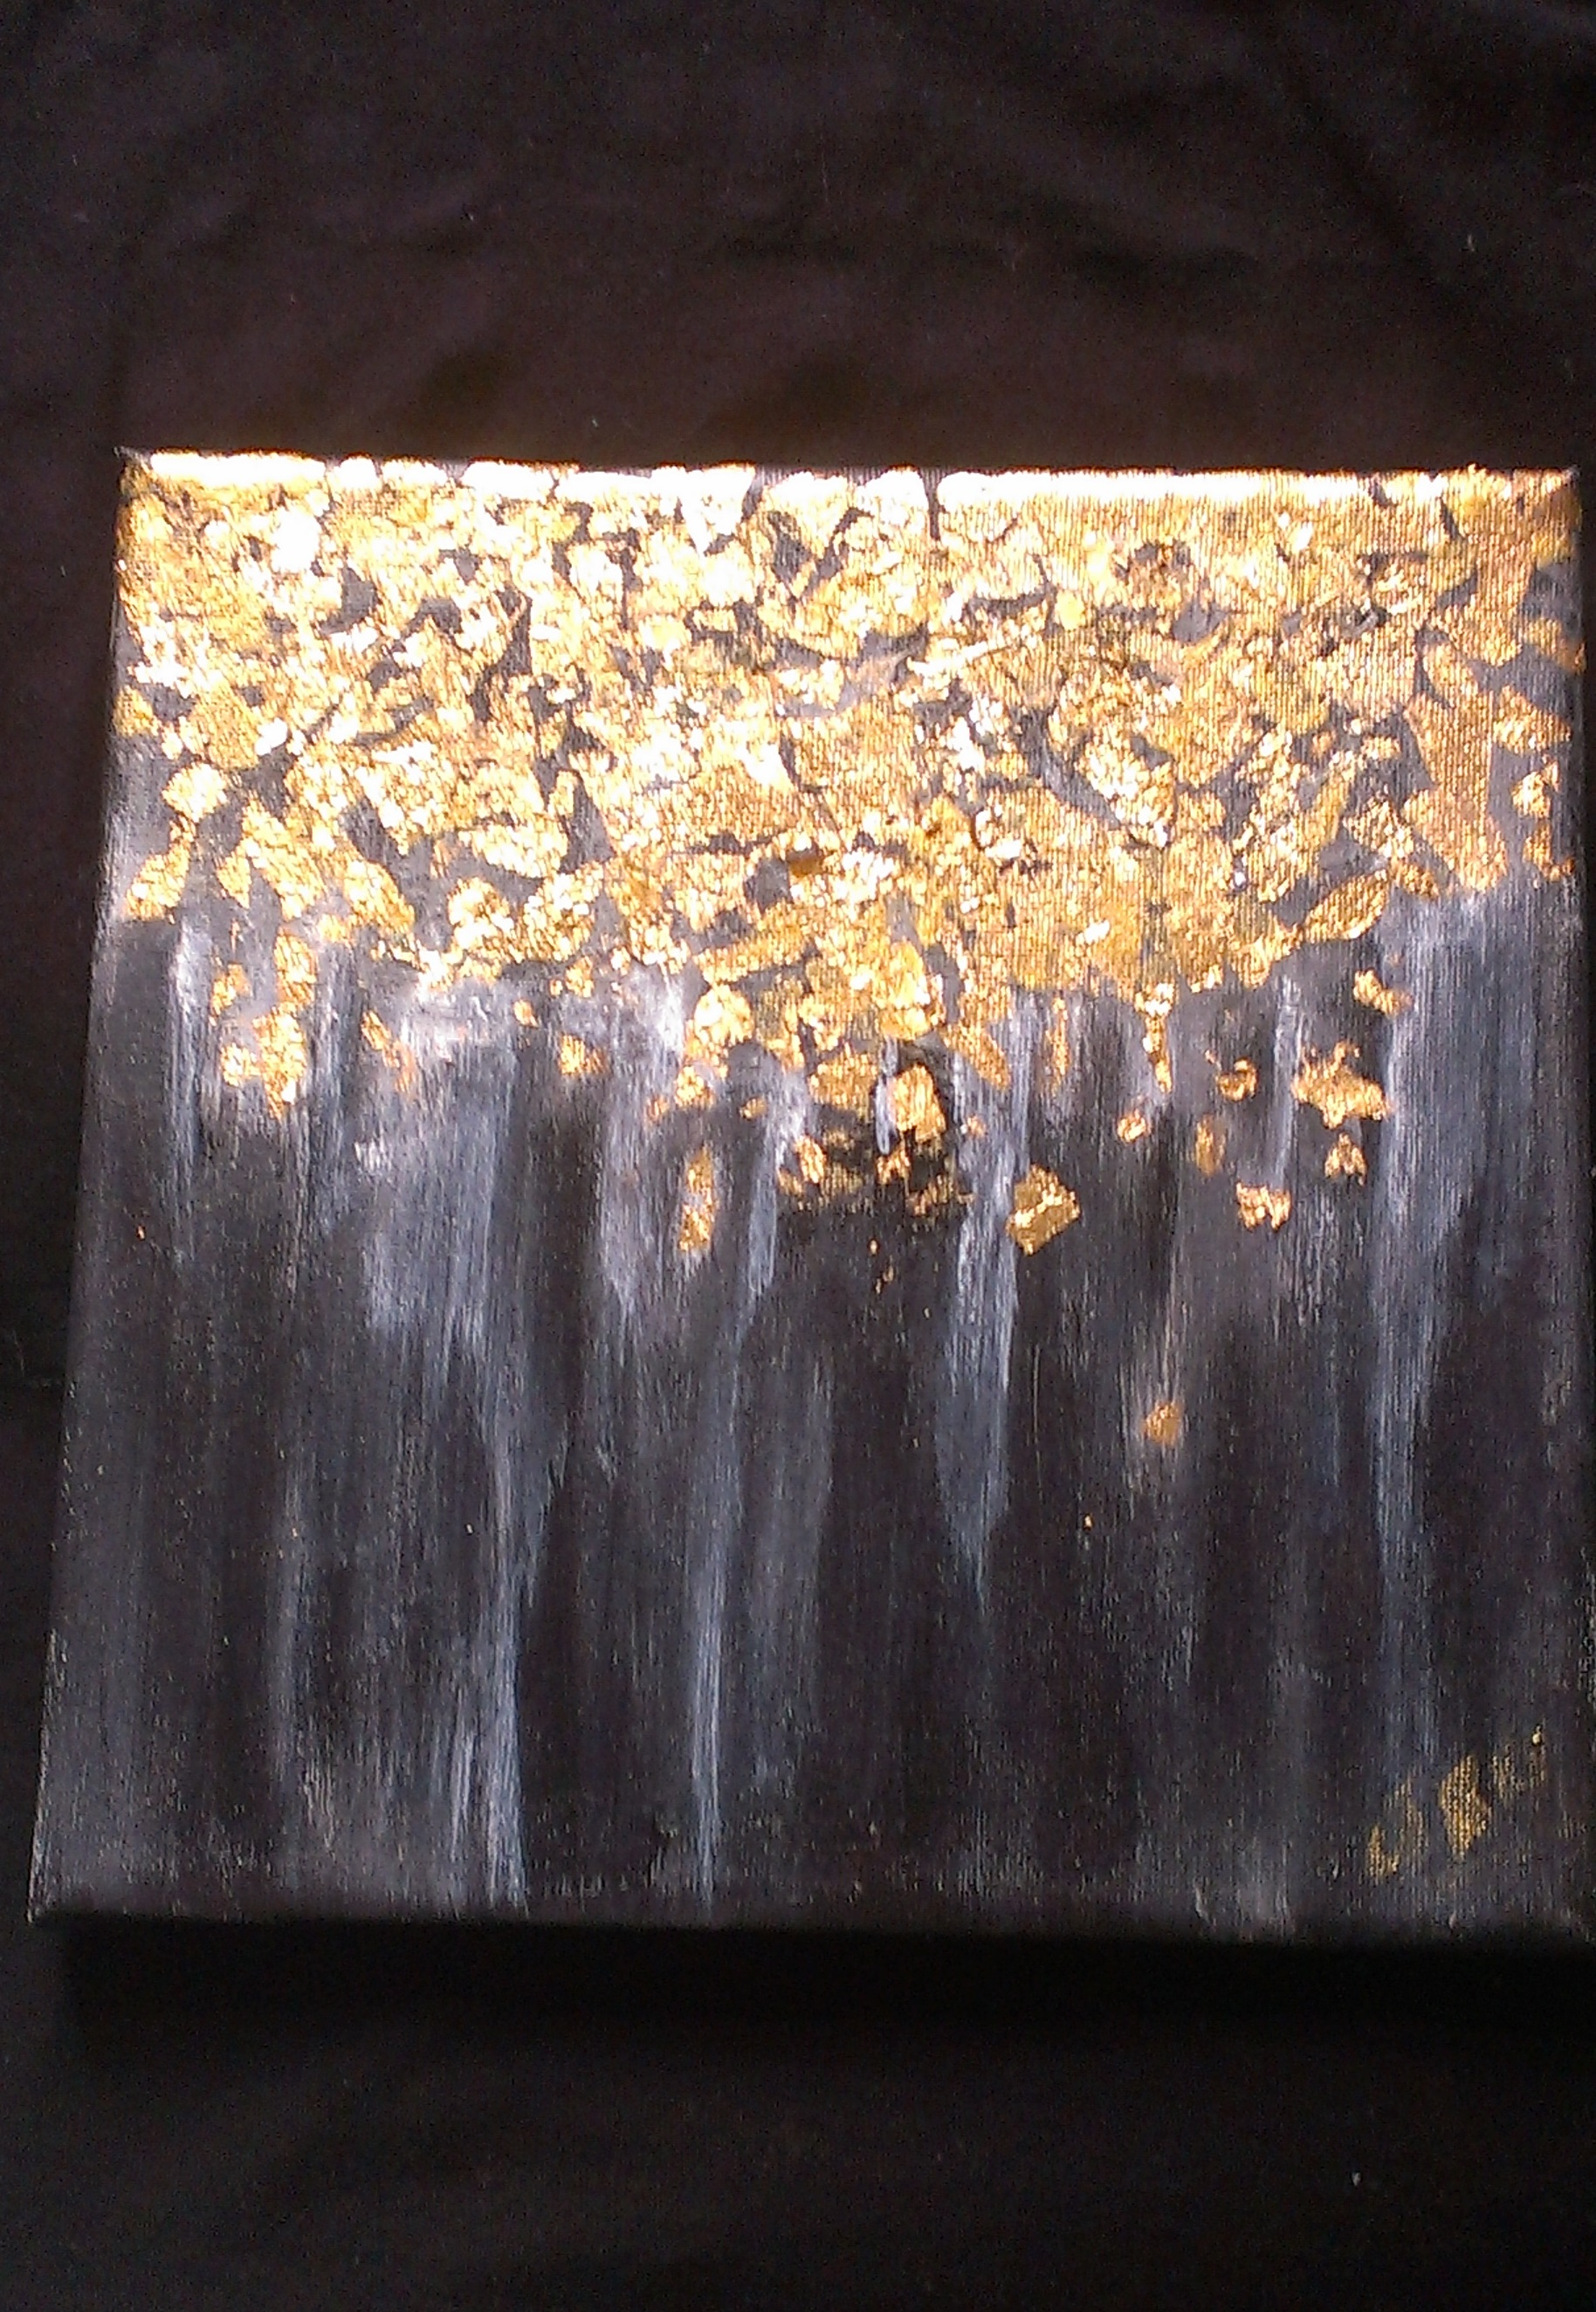 24crt Gold Leaf abstract painting